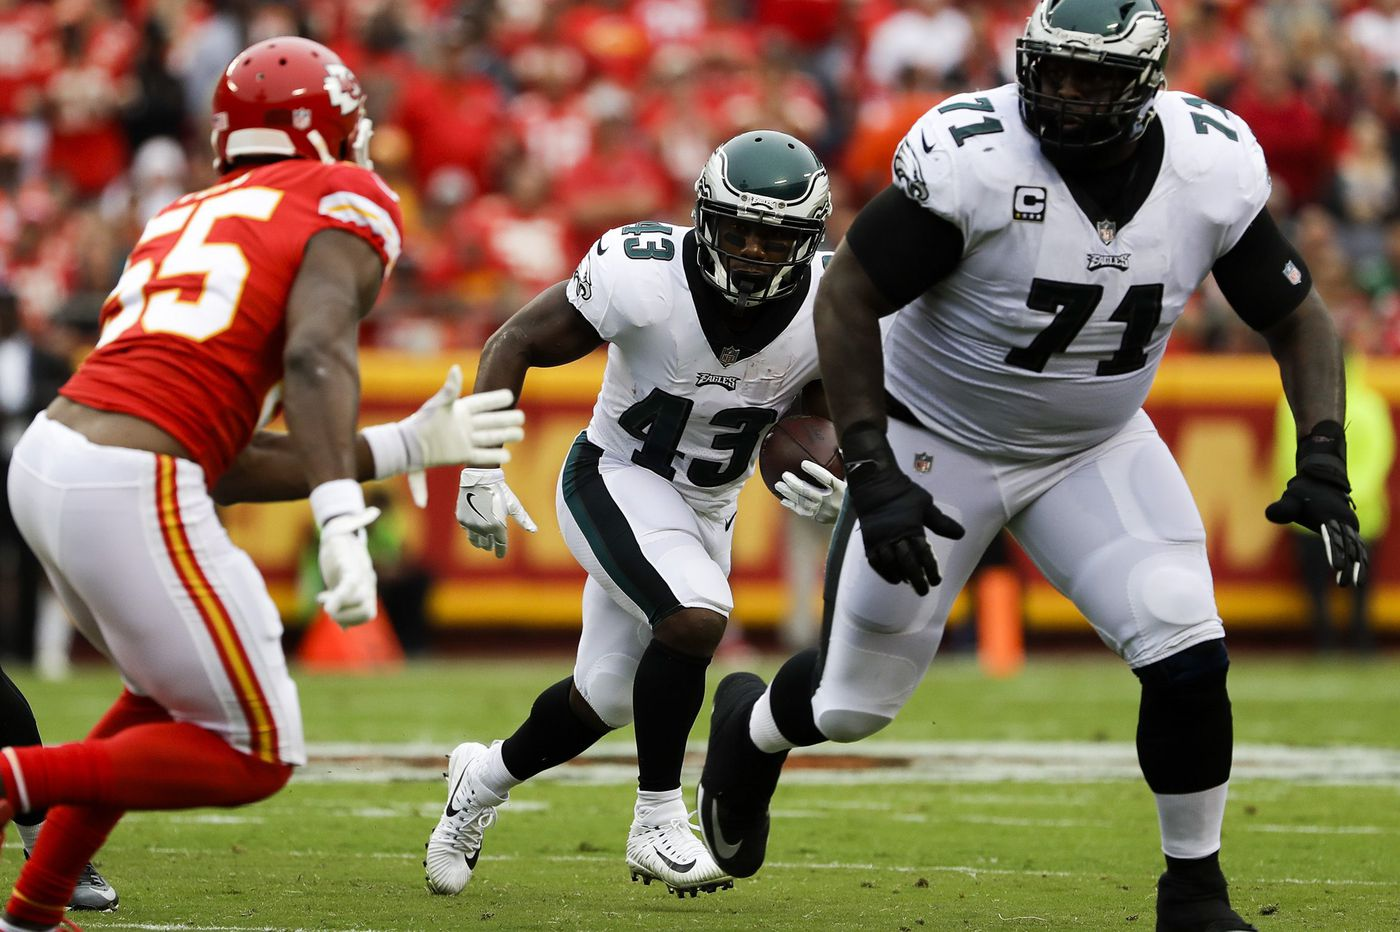 Examining assumptions: Why the Eagles haven't been as good as expected